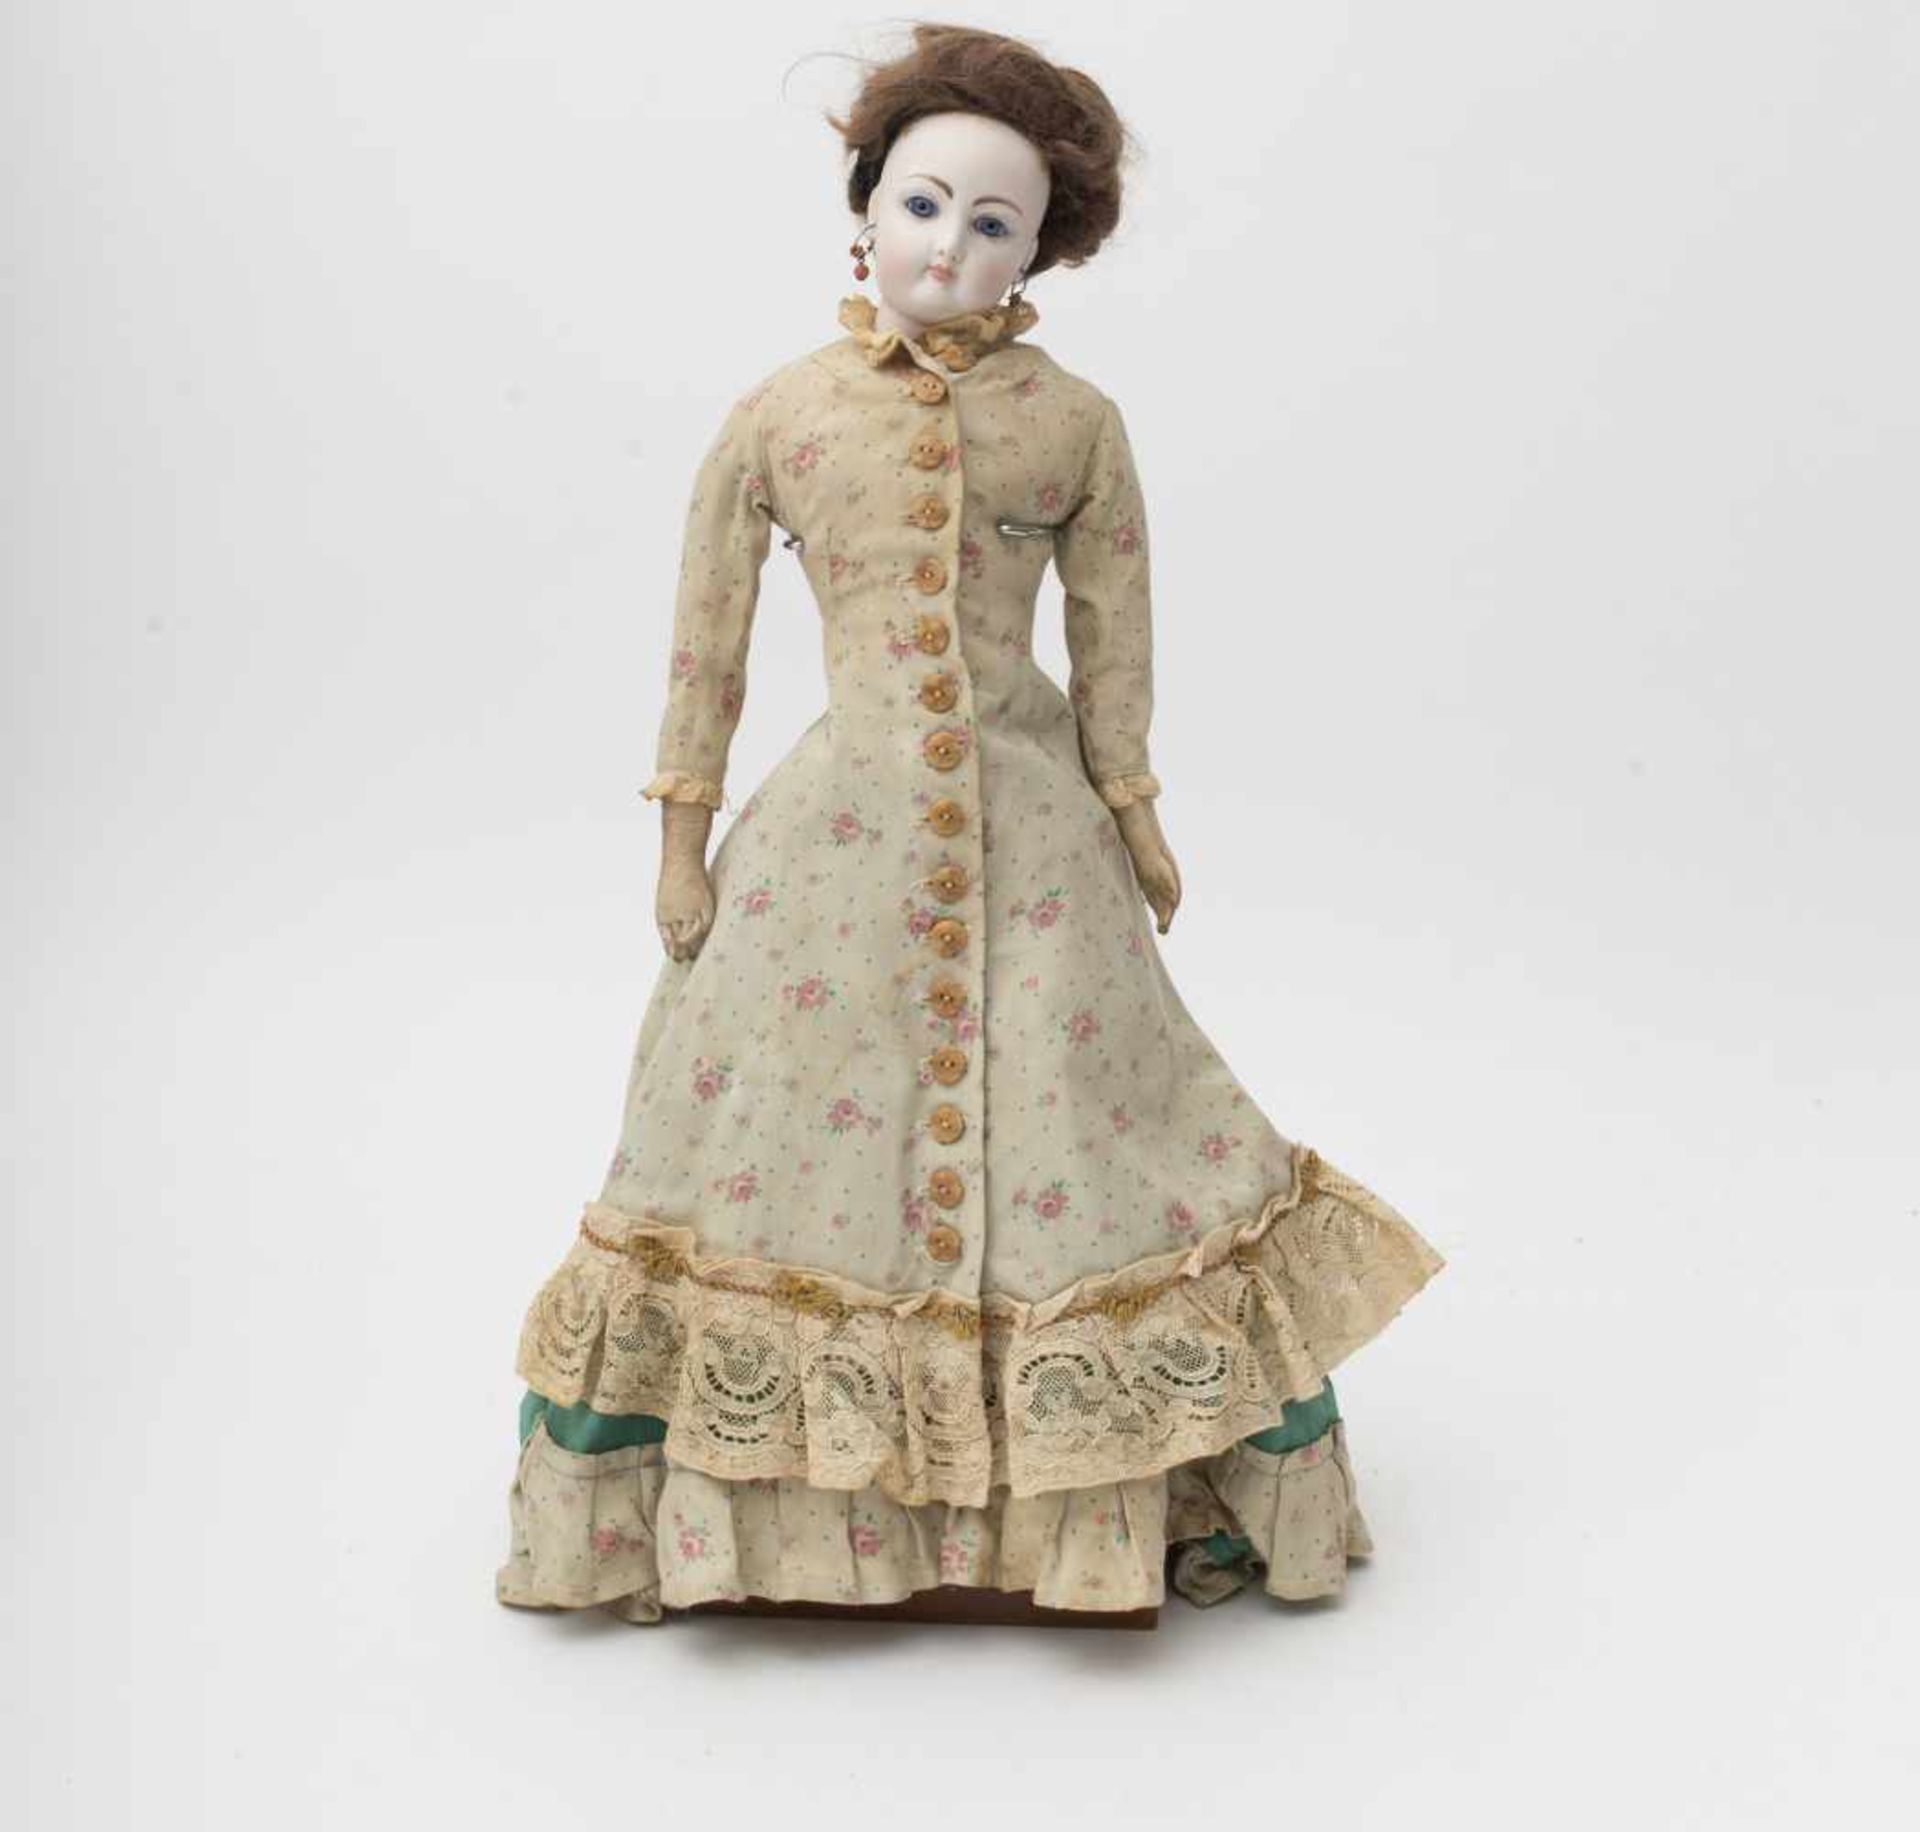 Fashion doll Parisian-type in the François GAULTIER style, with biscuit head and torso, kidskin